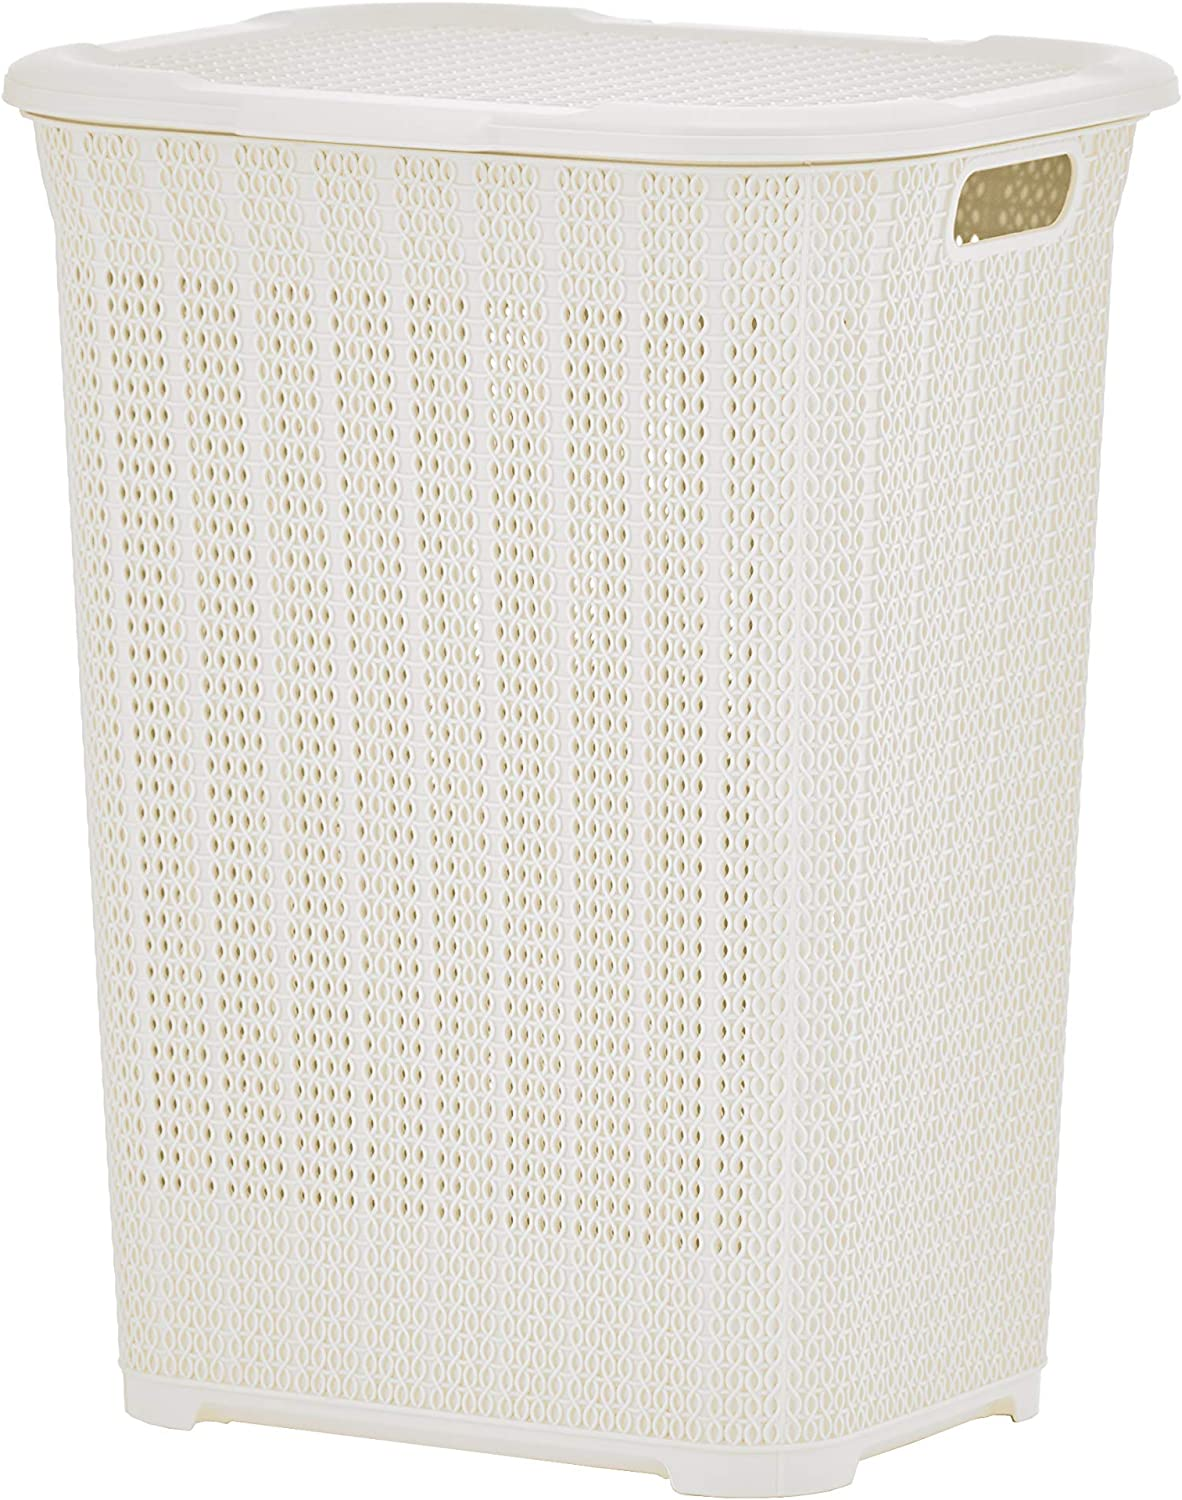 Superio Laundry Hamper Knit Style Basket with Lid 50 Liter - Cream Beige Modern Designed - Laundry Room Hamper Basket with Cutout Handles Large & Tall Shape Bin to Storage Dirty Cloths